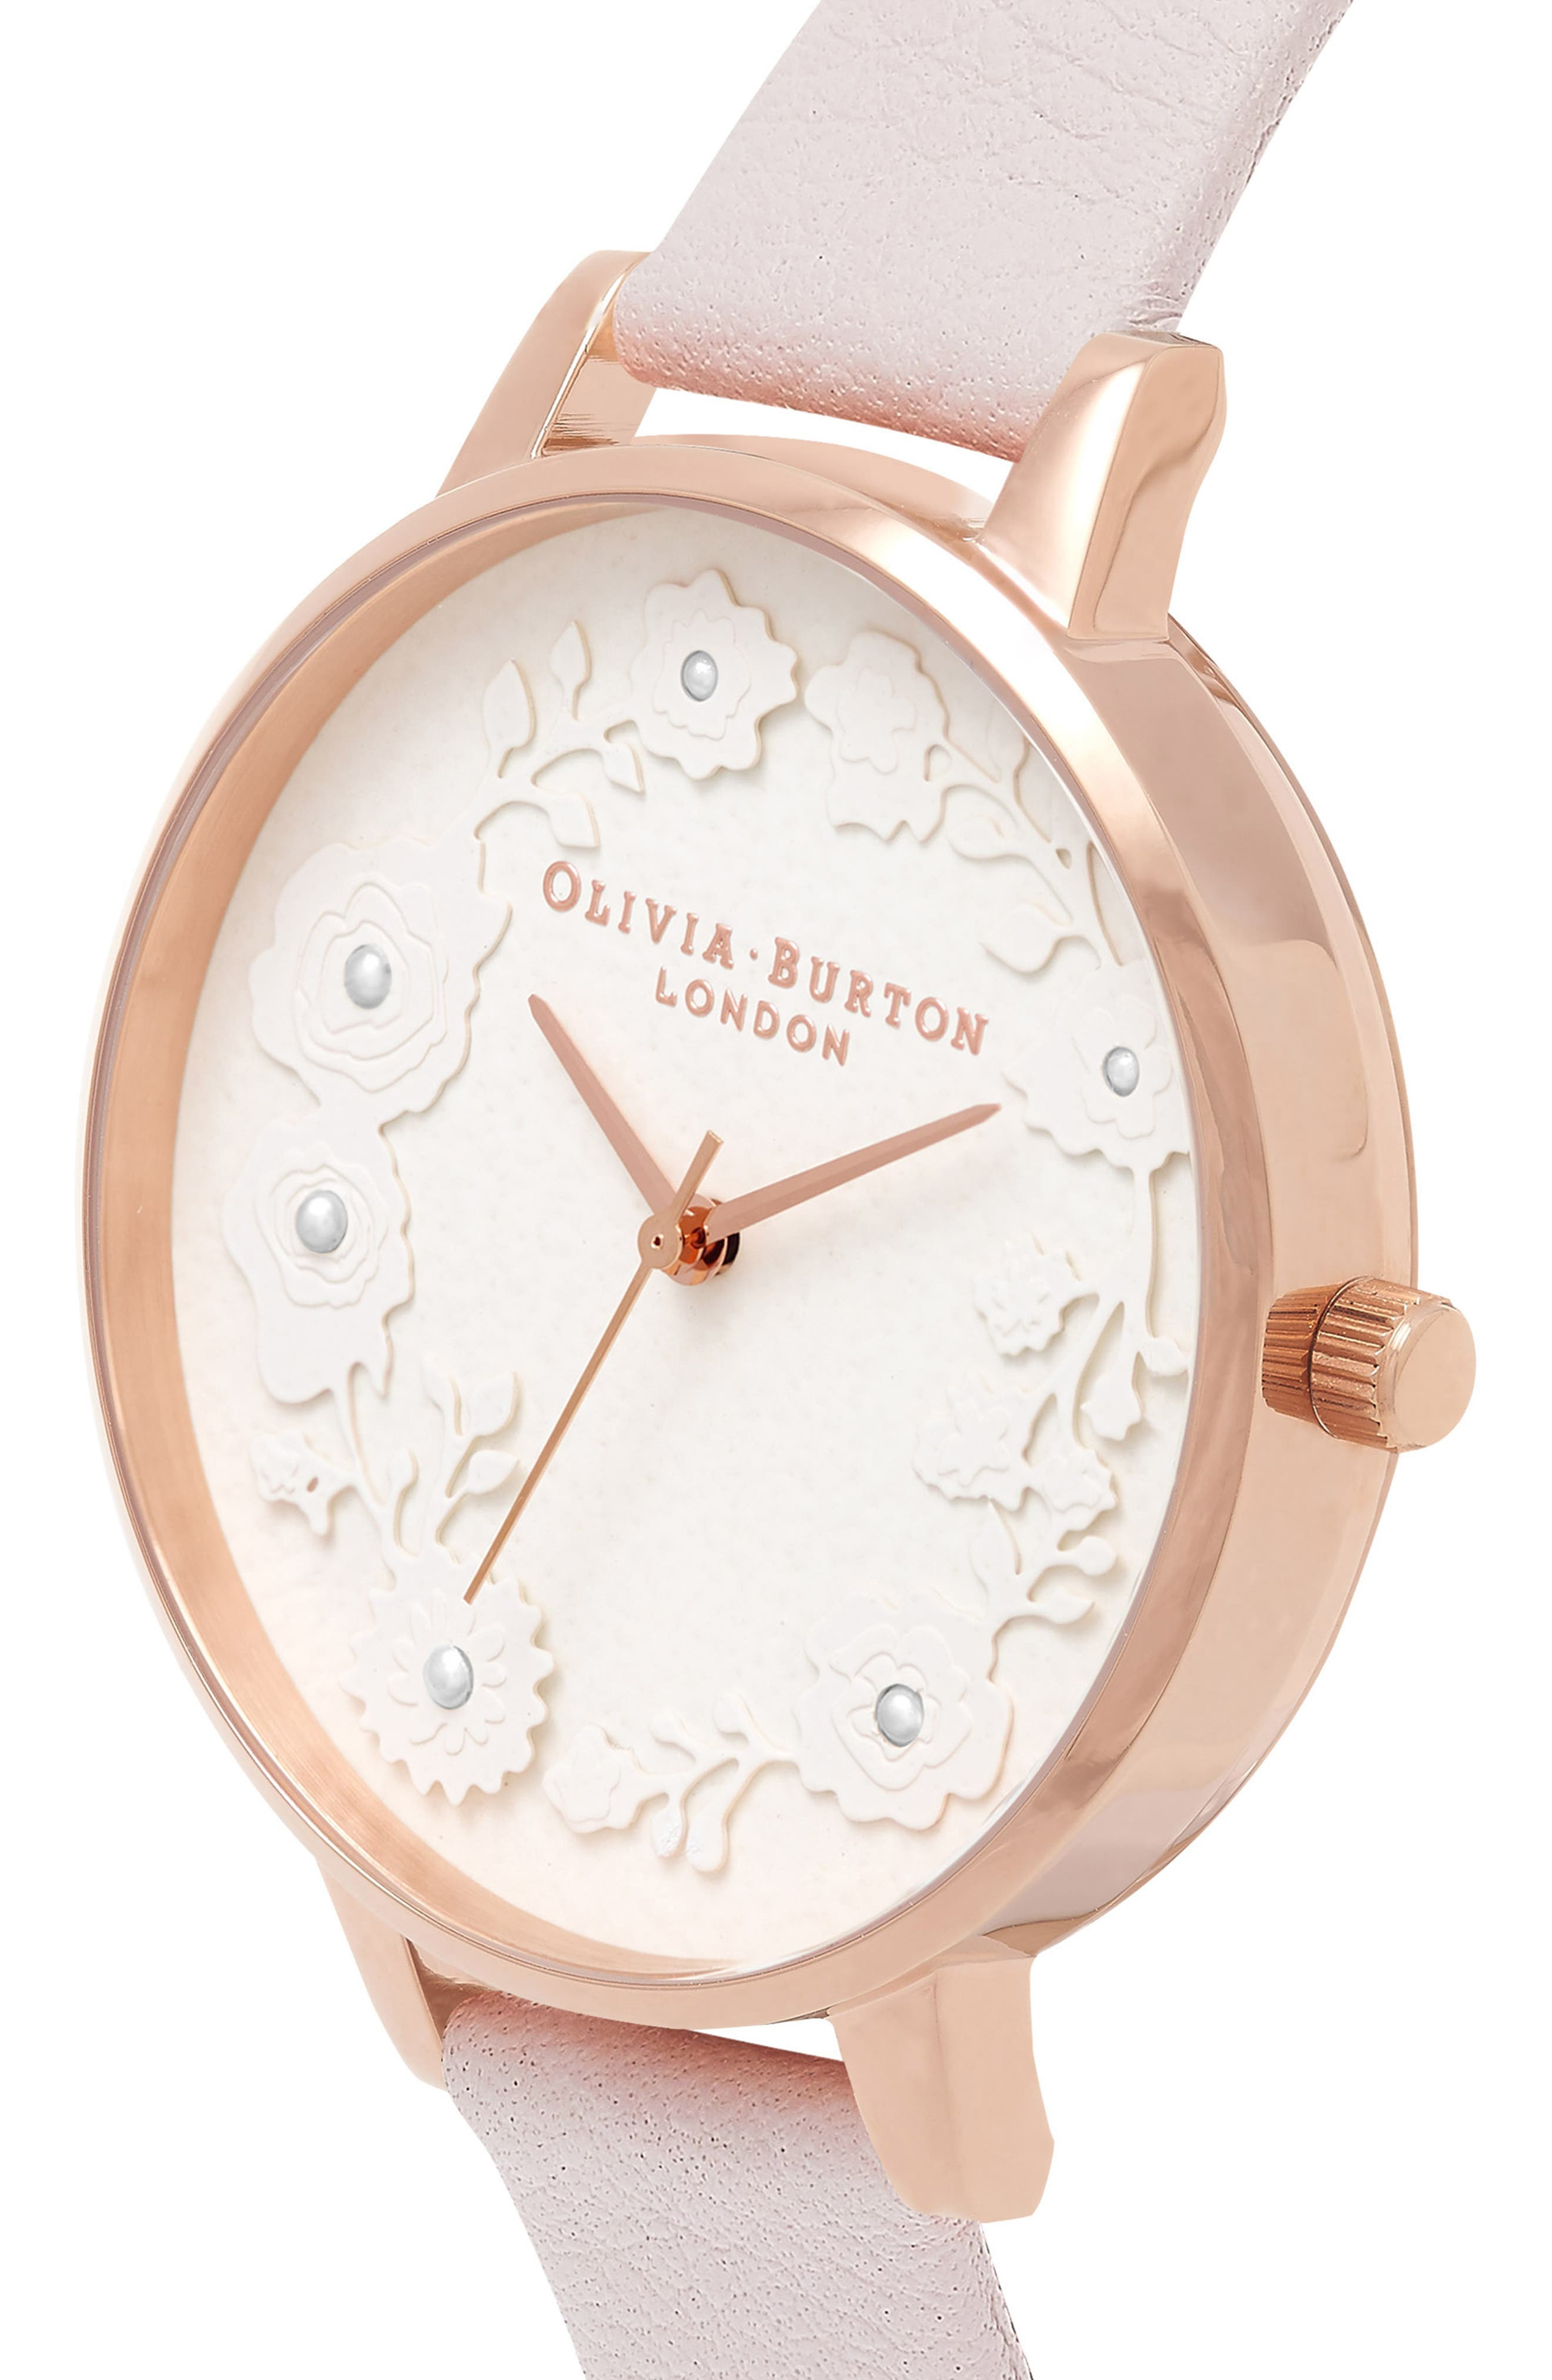 Artisan Dial Leather Strap Watch, 38mm,                             Alternate thumbnail 4, color,                             BLOSSOM/ WHITE/ ROSE GOLD